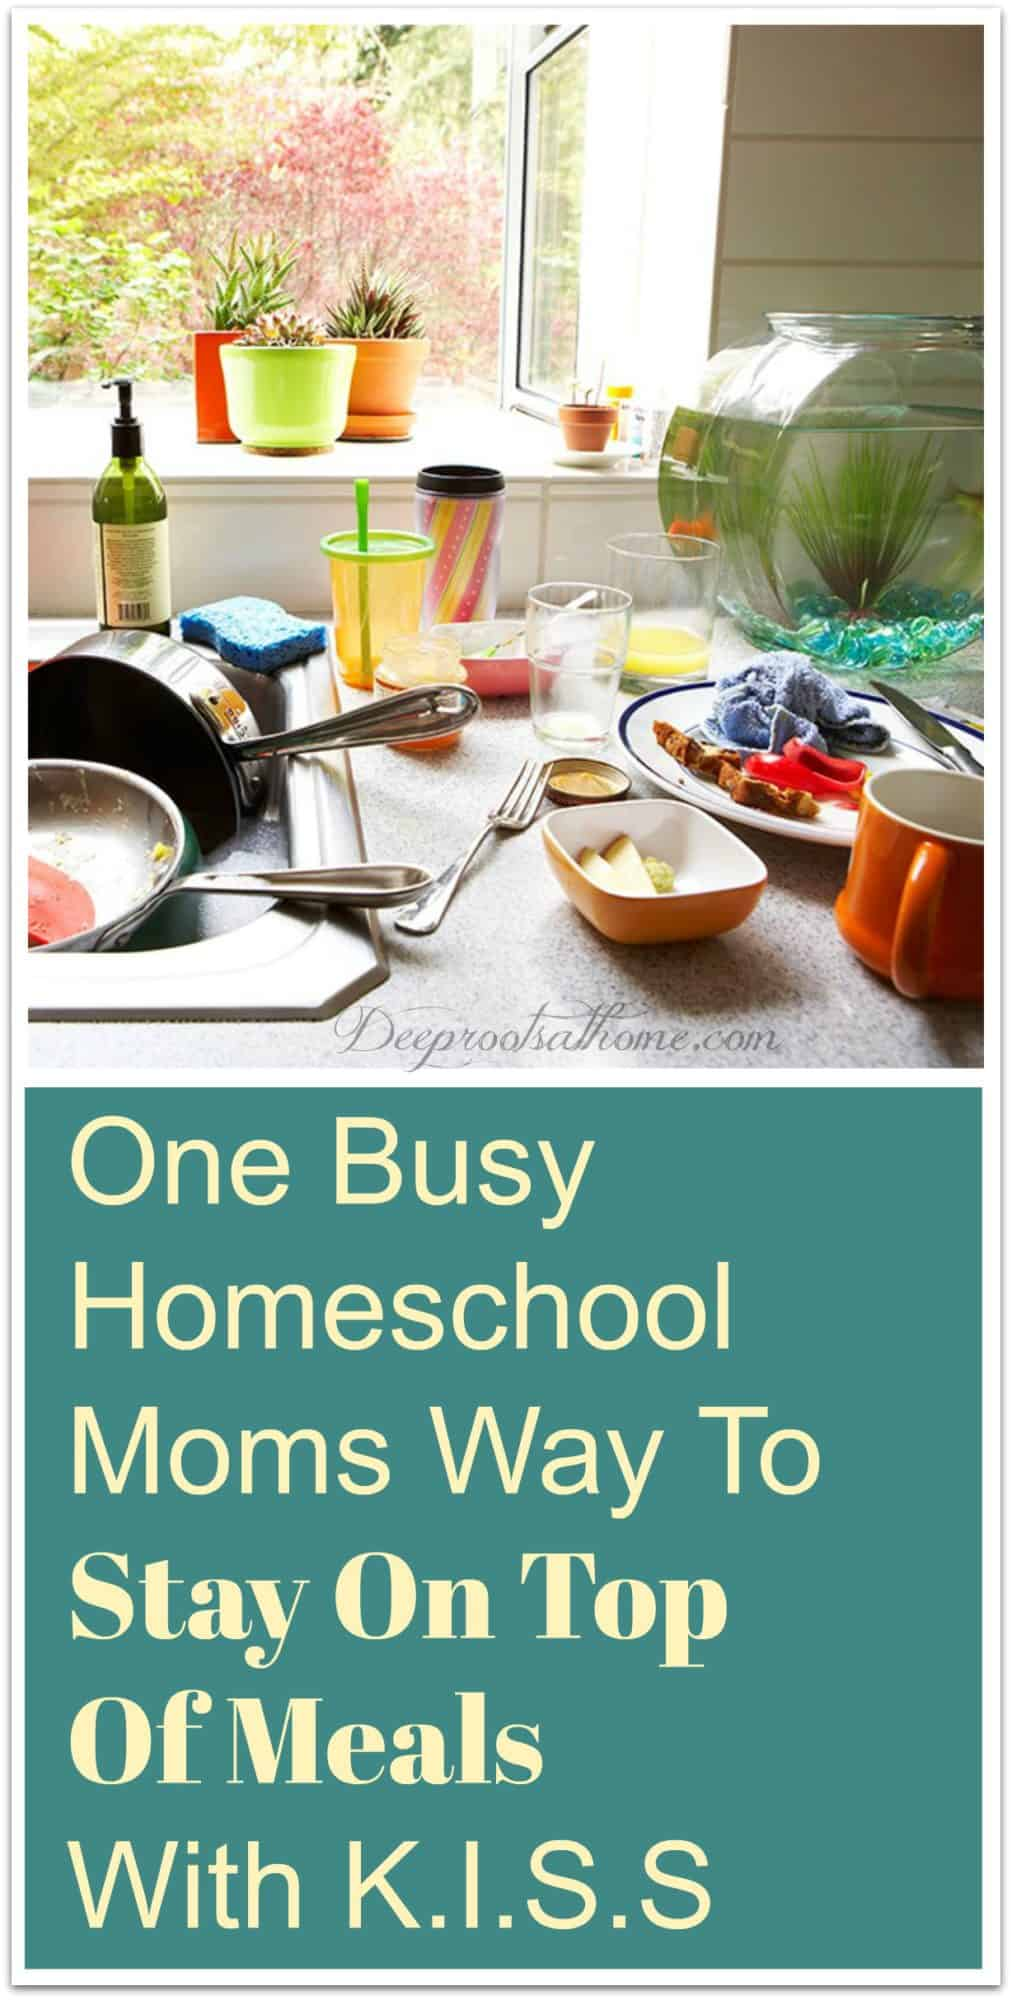 One Busy Homeschooling Mom's Way To Stay On Top Of Meals With K.I.S.S. A pretty, well-designed kitchen sink by a window with dirty dishes and a fish bowl